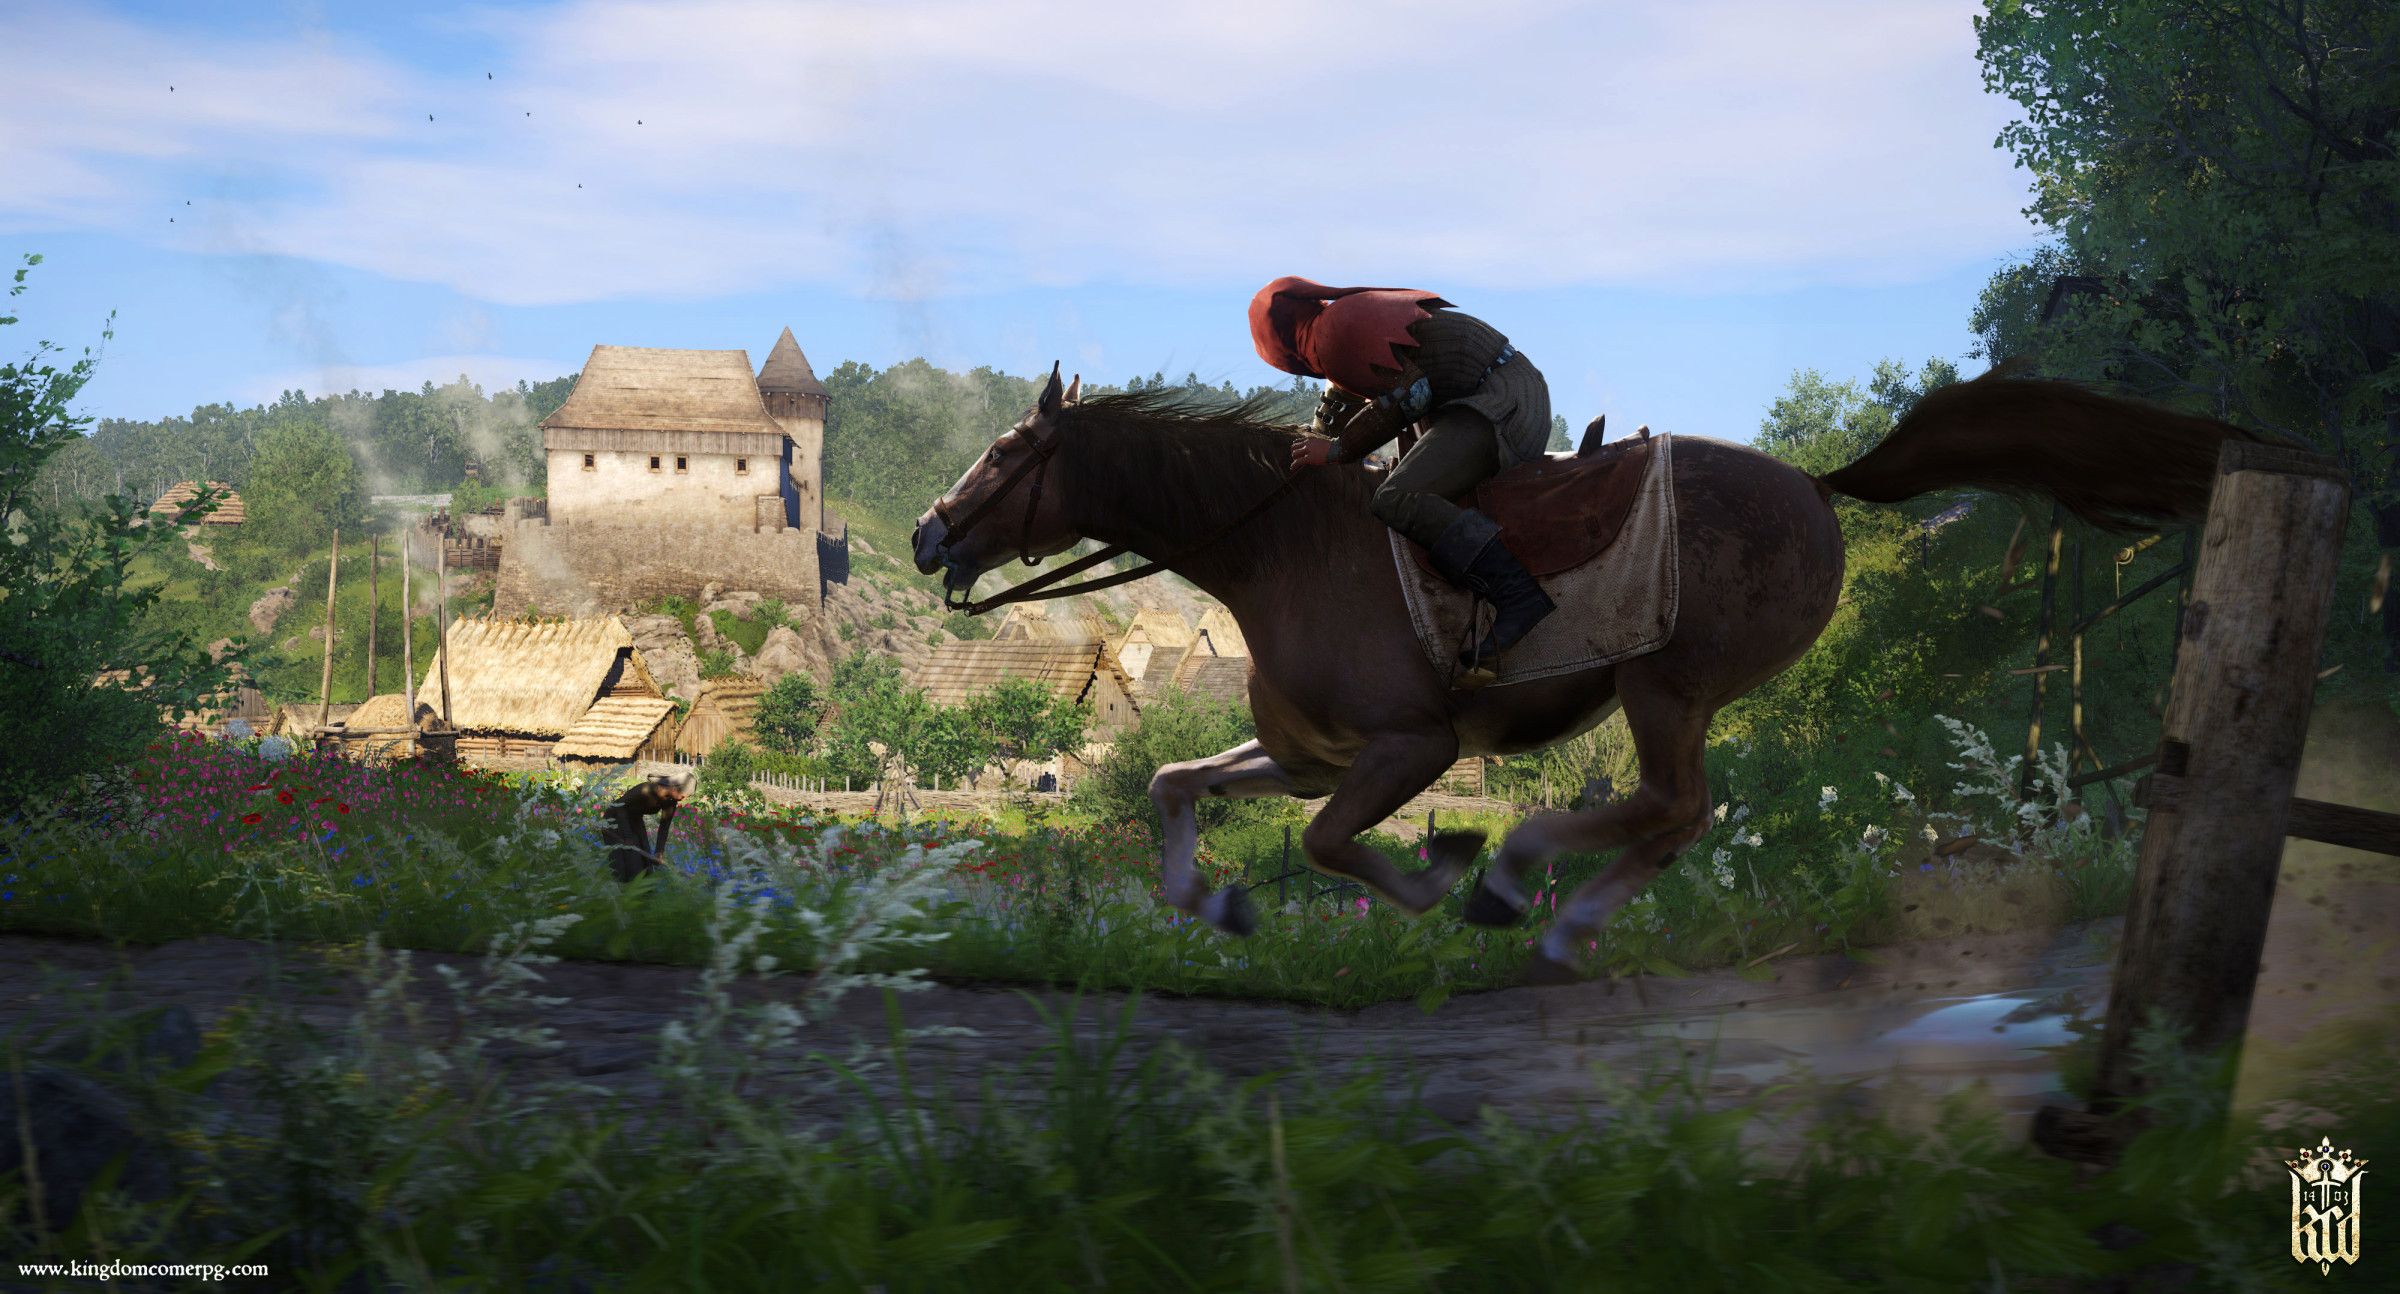 Kingdom Come Deliverance: How to get a Horse and armor, plus how to